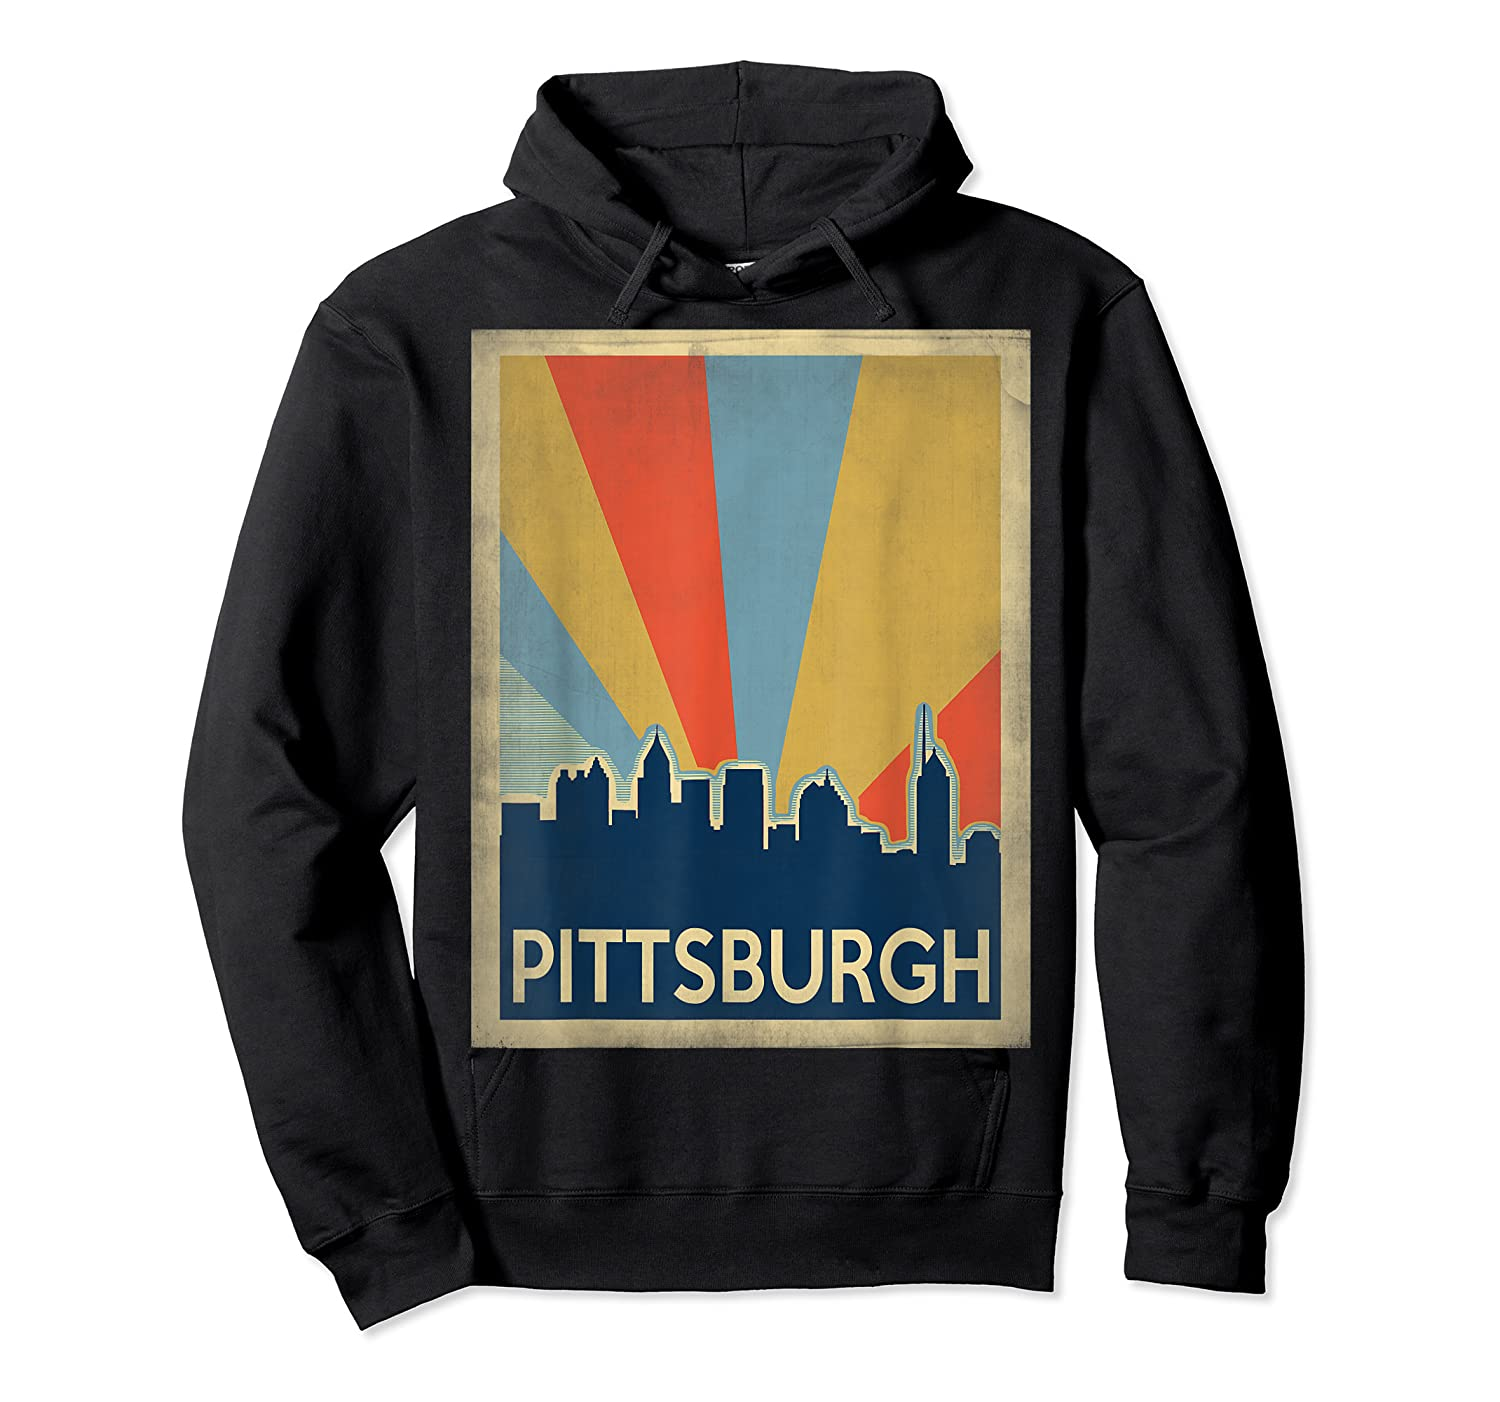 Classic Pittsburgh Shirts Unisex Pullover Hoodie